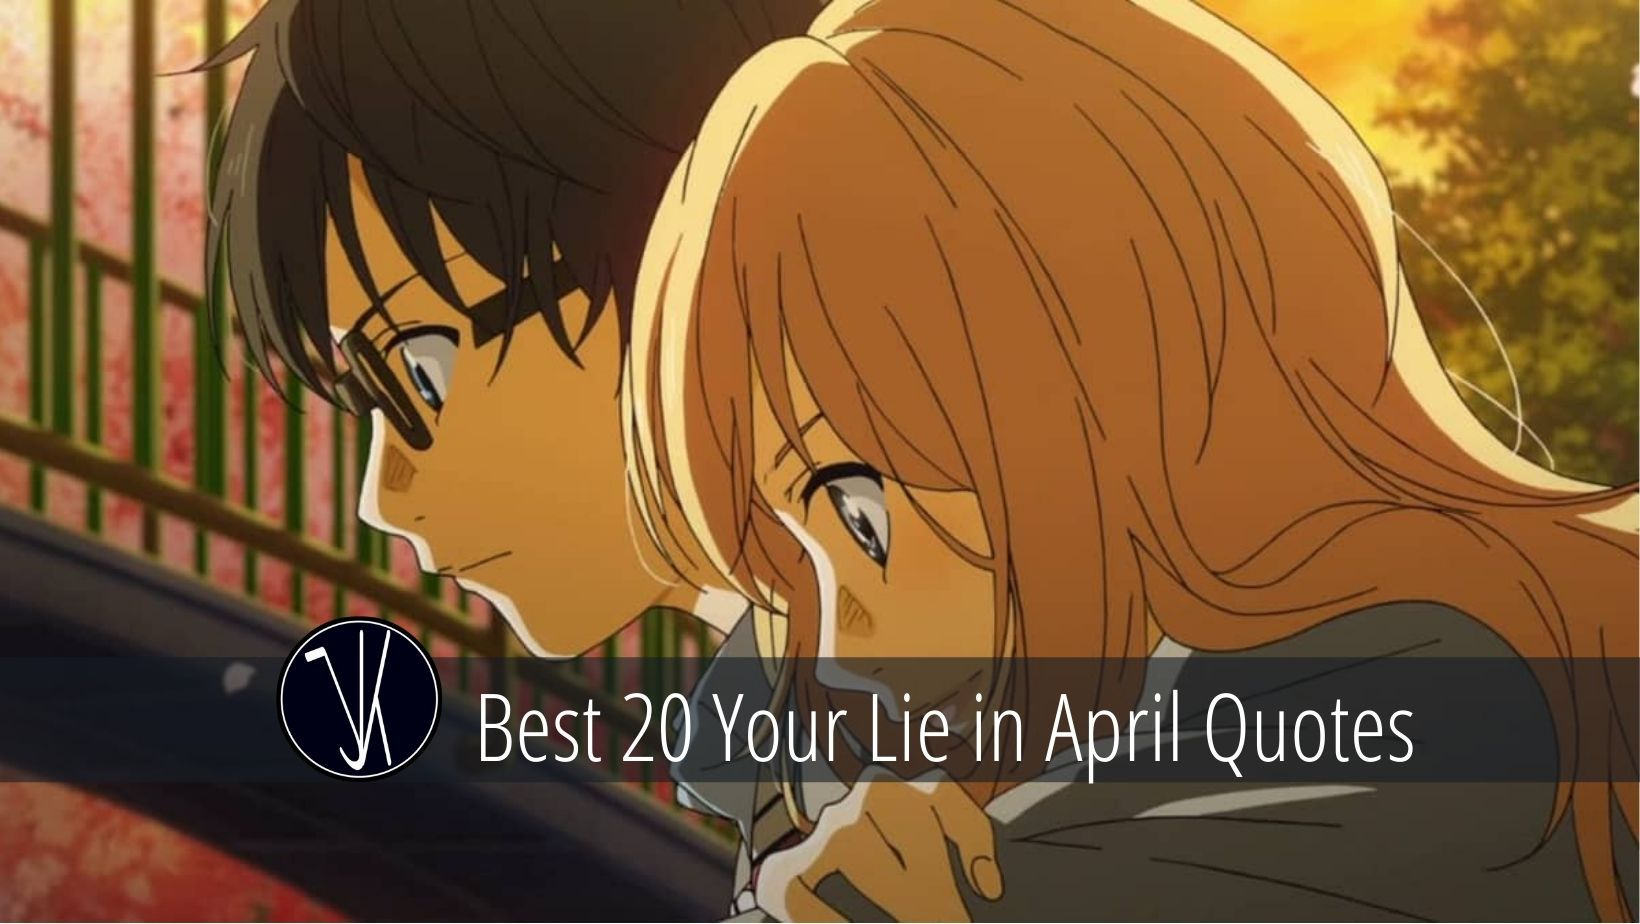 Your Lie in April Quotes